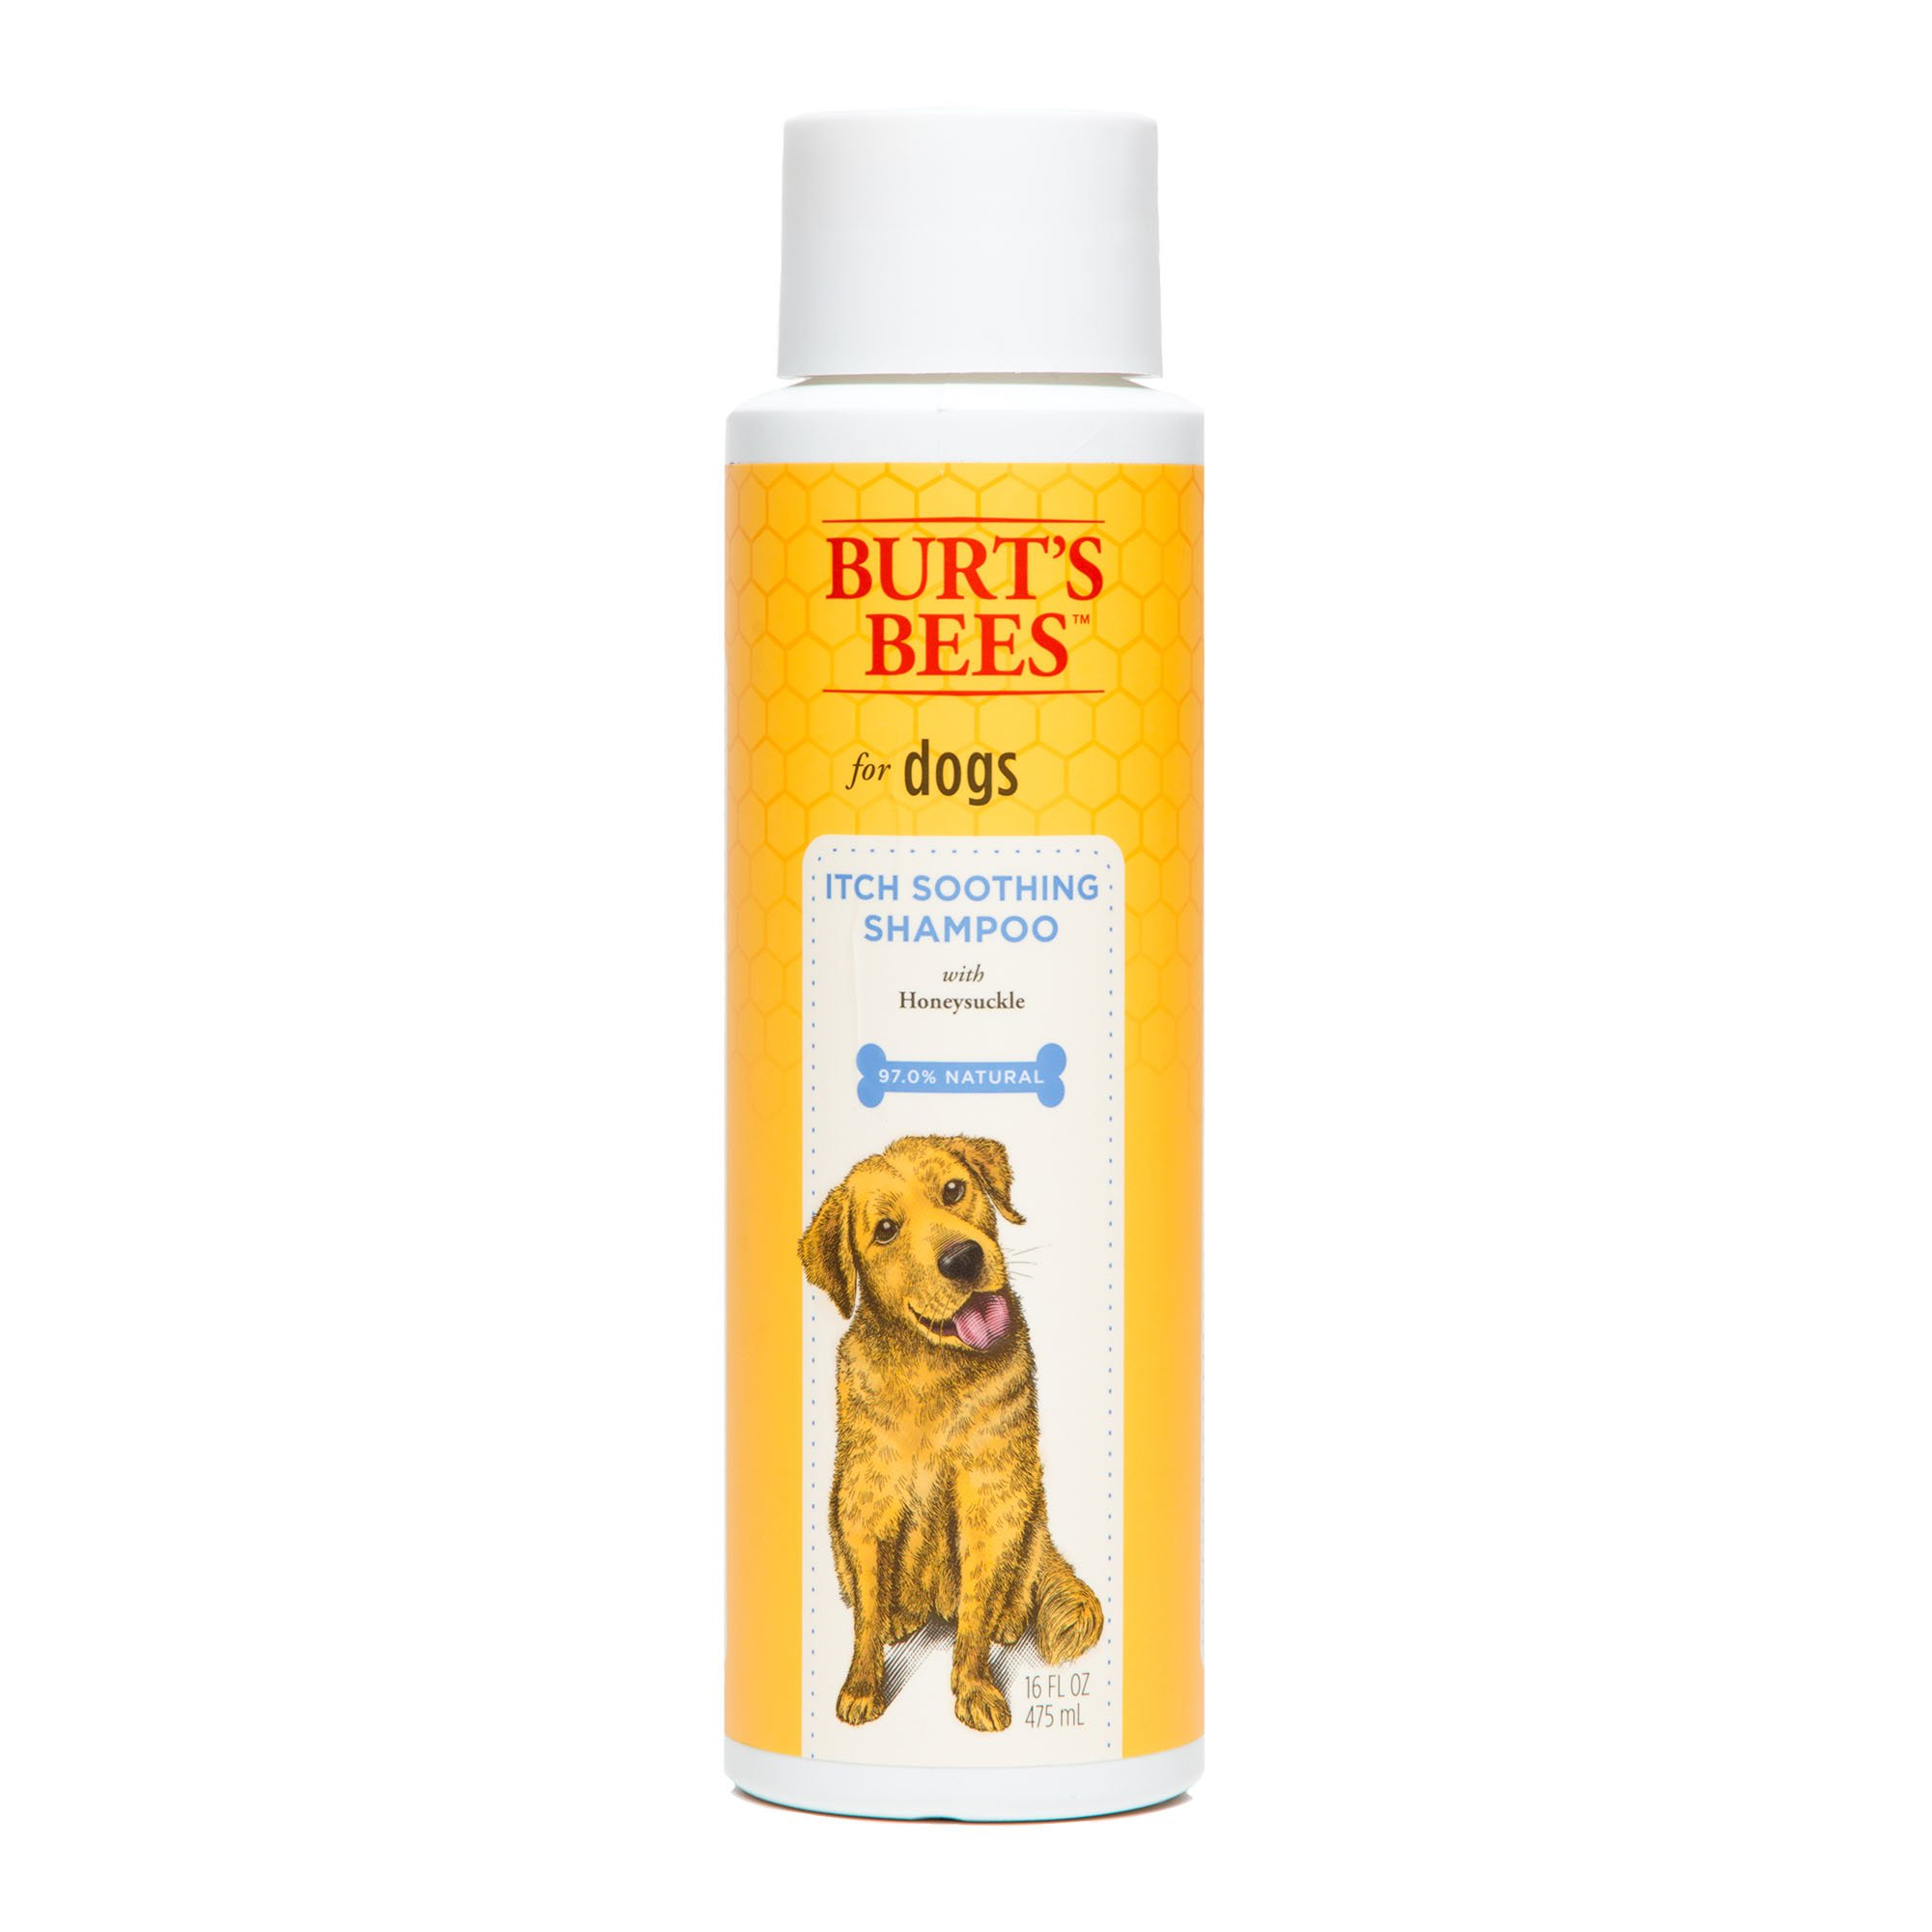 Bees for Dogs Itch Soothing Shampoo